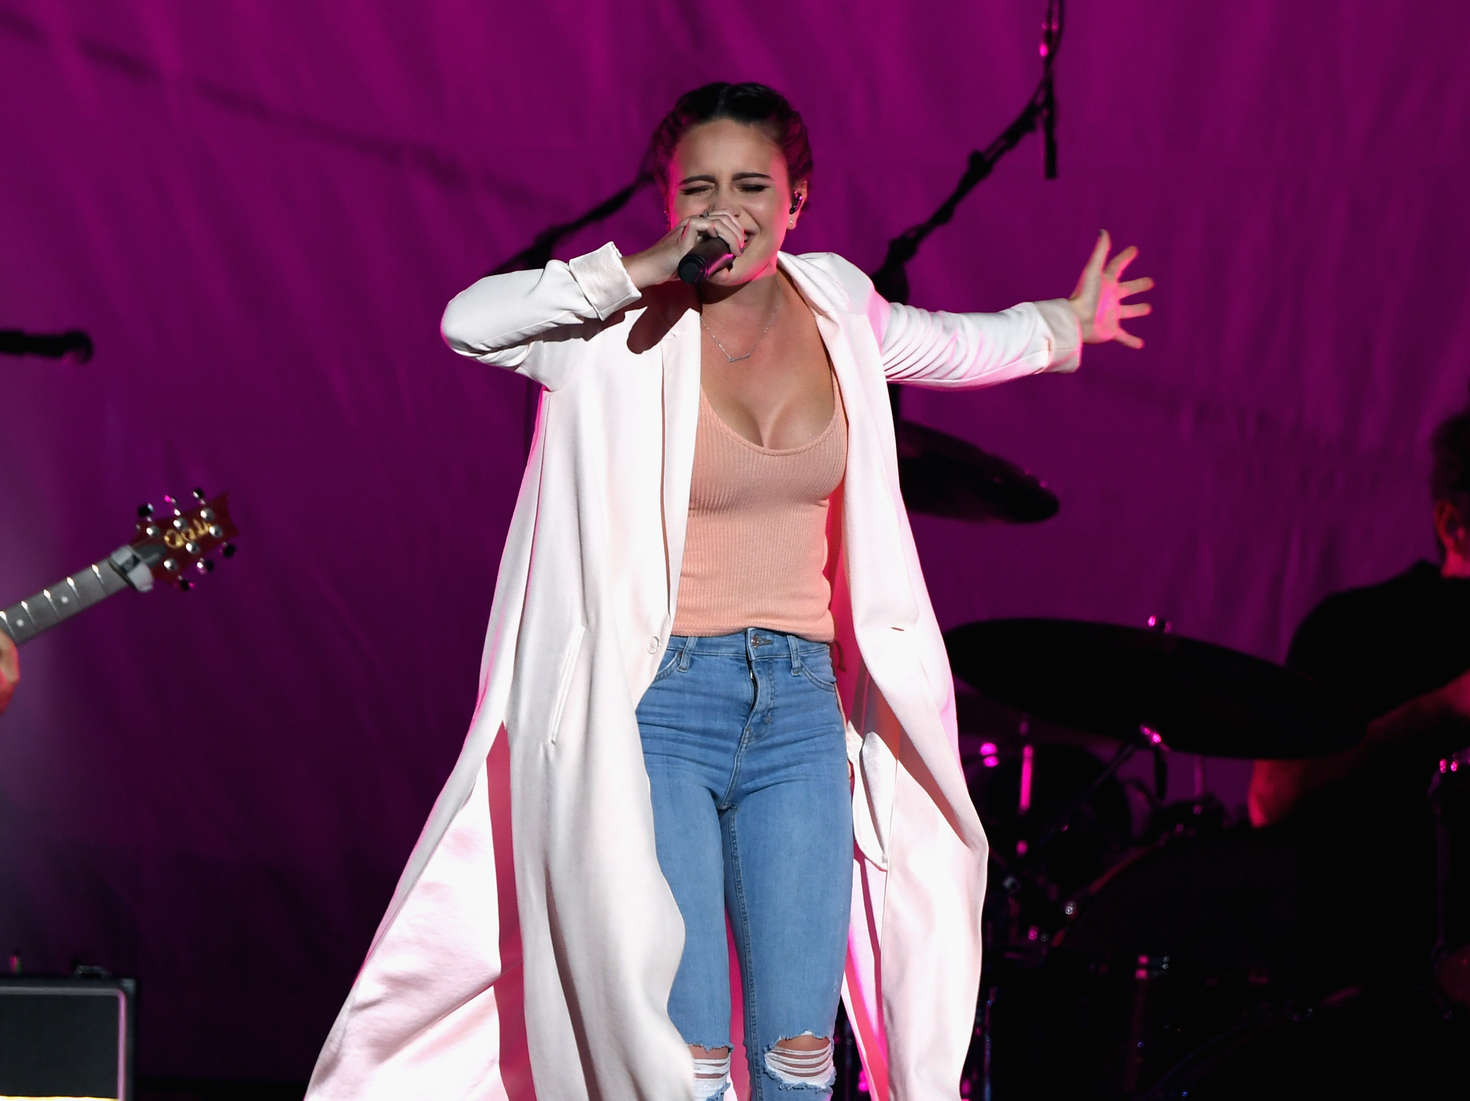 Bea Miller Performs on Selena Gomez Revival World Tour in Las Vegas